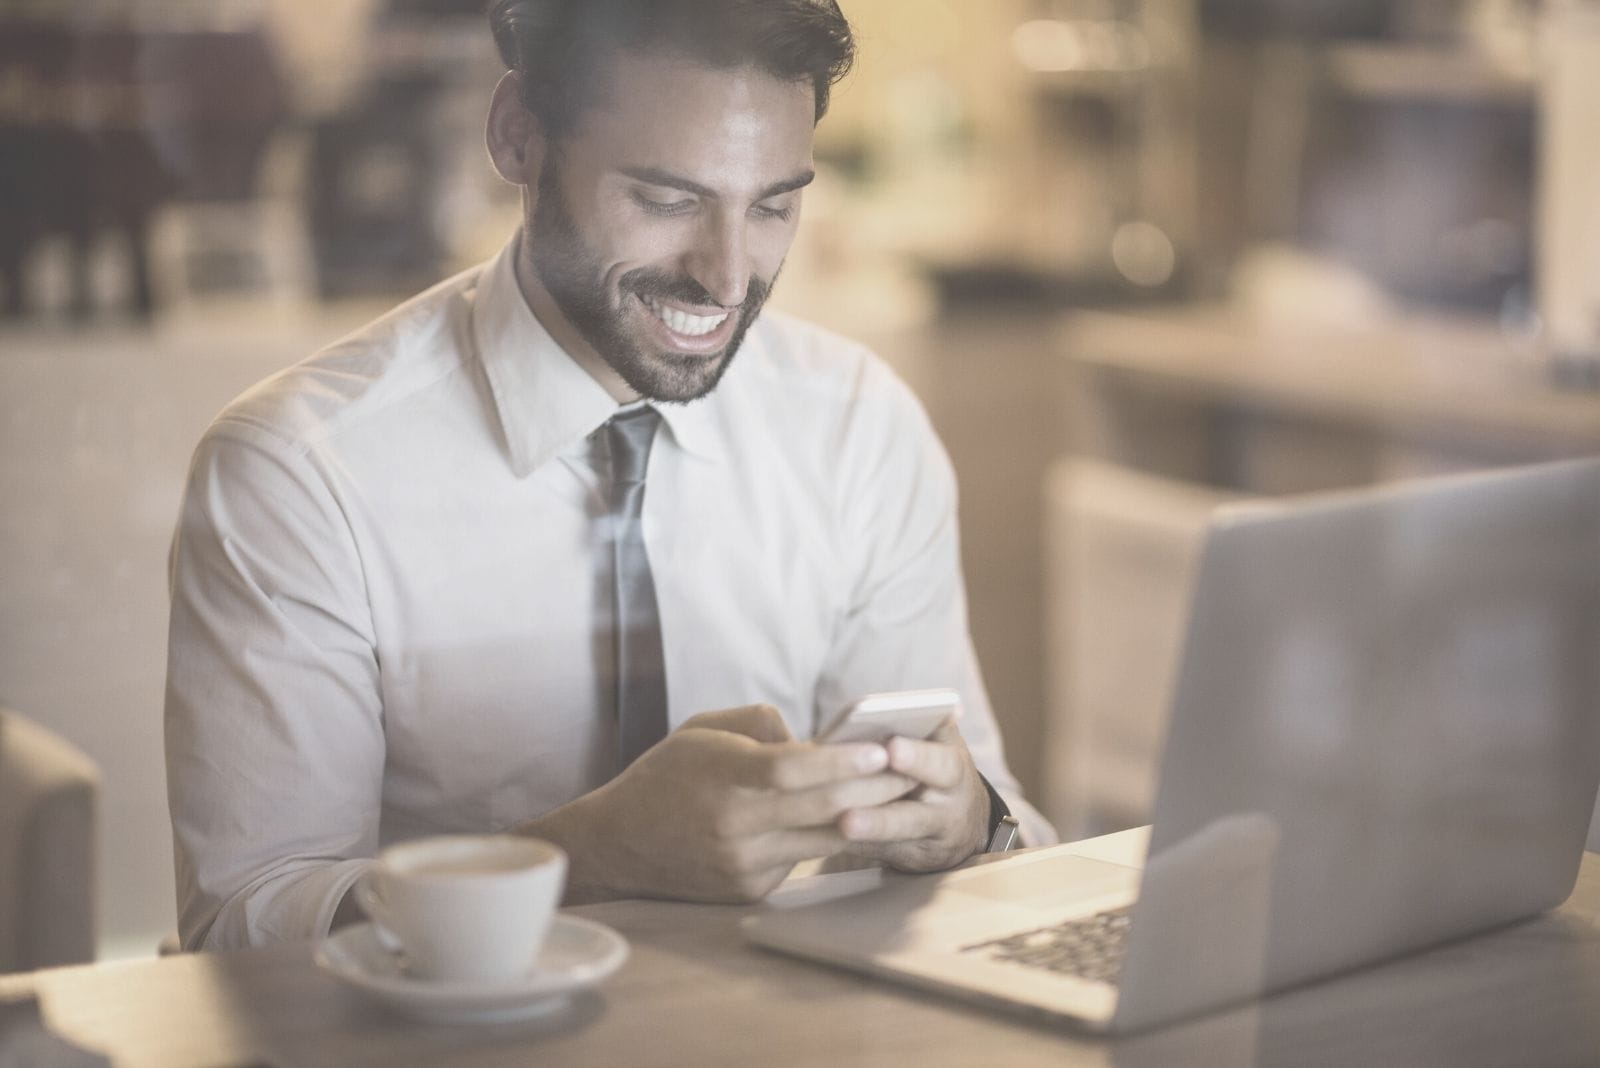 bearded man smiling reading messages from his phone inside a cafe with a laptop and coffee on table